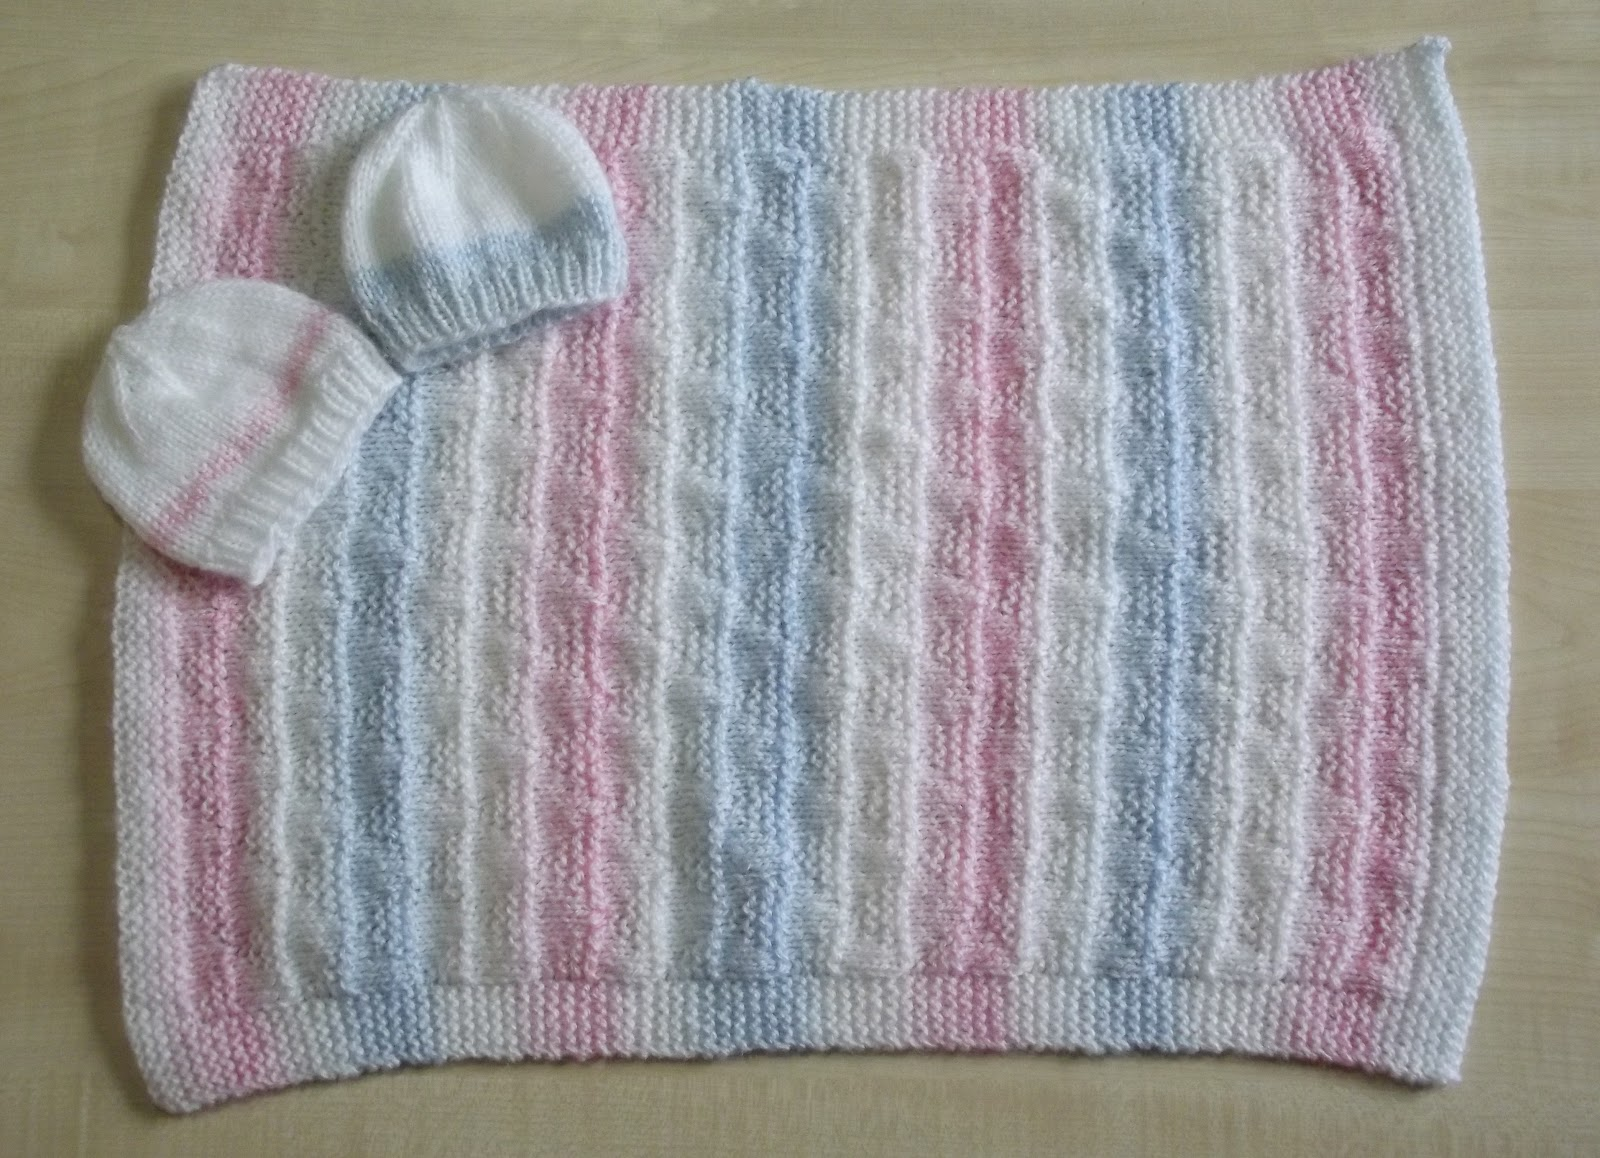 Knitting Patterns For Nicu Babies : Knit one, Stitch one, Save one?: Second Year of Projects Week 11